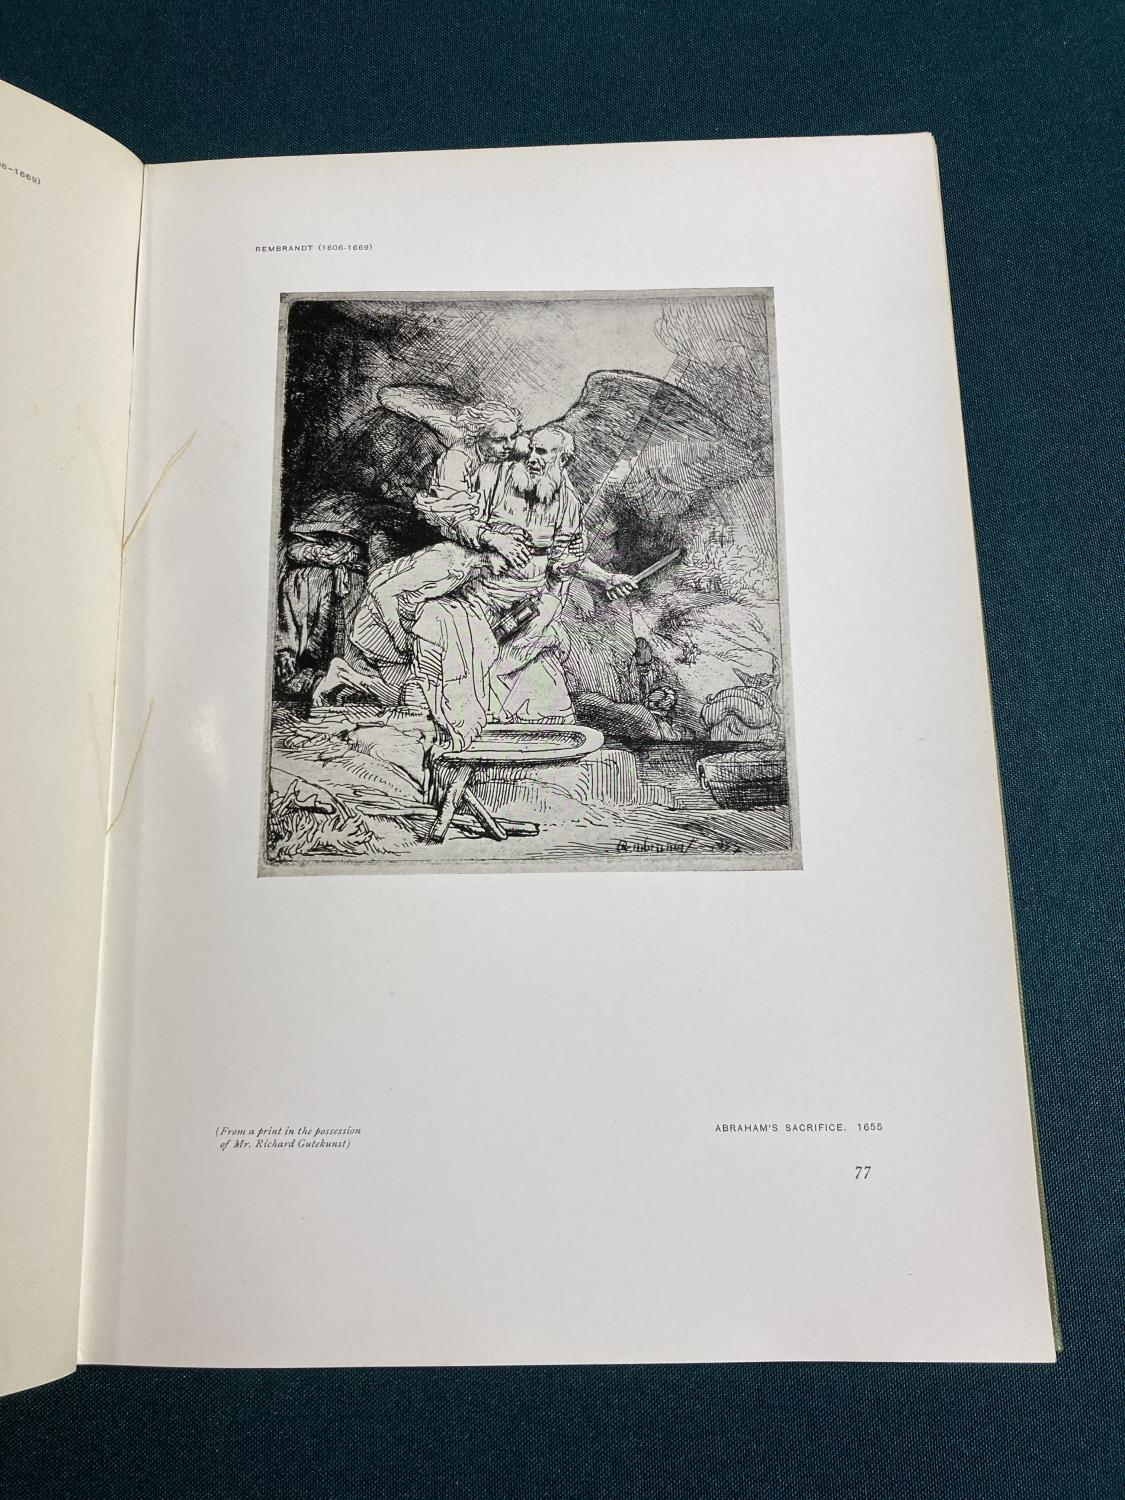 Dodgson, Cambell. The Etchings of James McNeill Whistler, plates, original vellum-backed boards, - Image 17 of 21